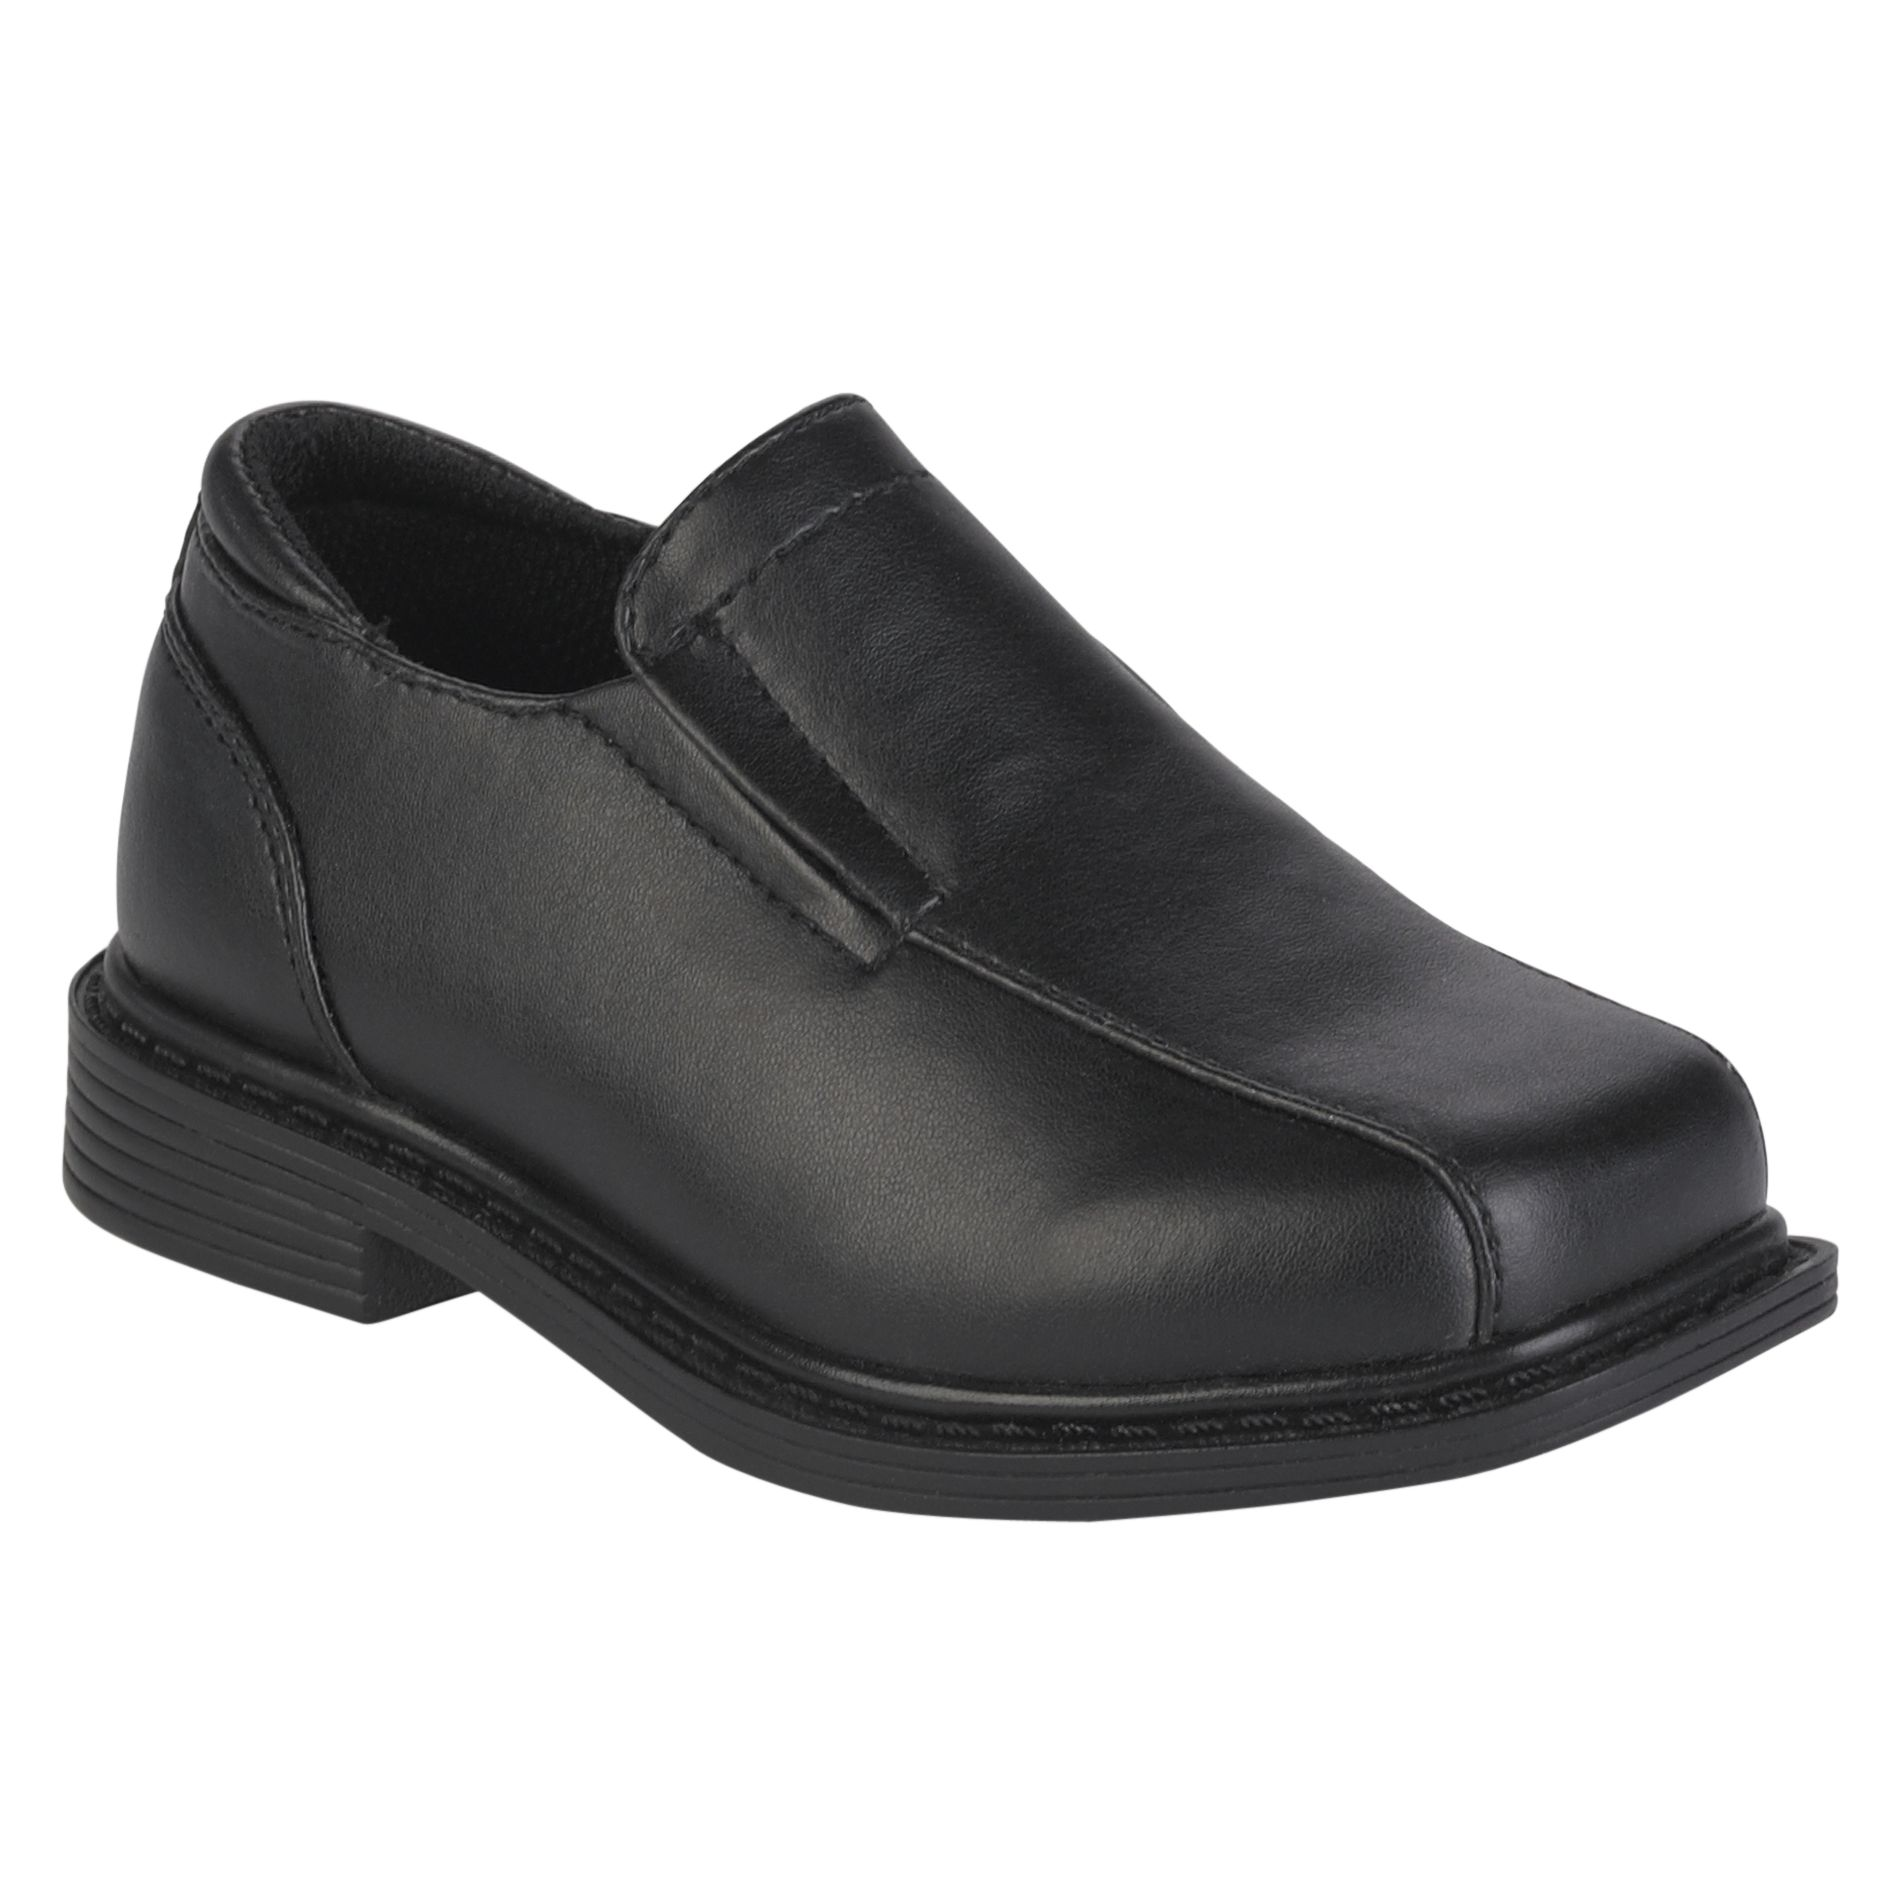 Toddler Boy's Arnold2 Dress Shoe - Black